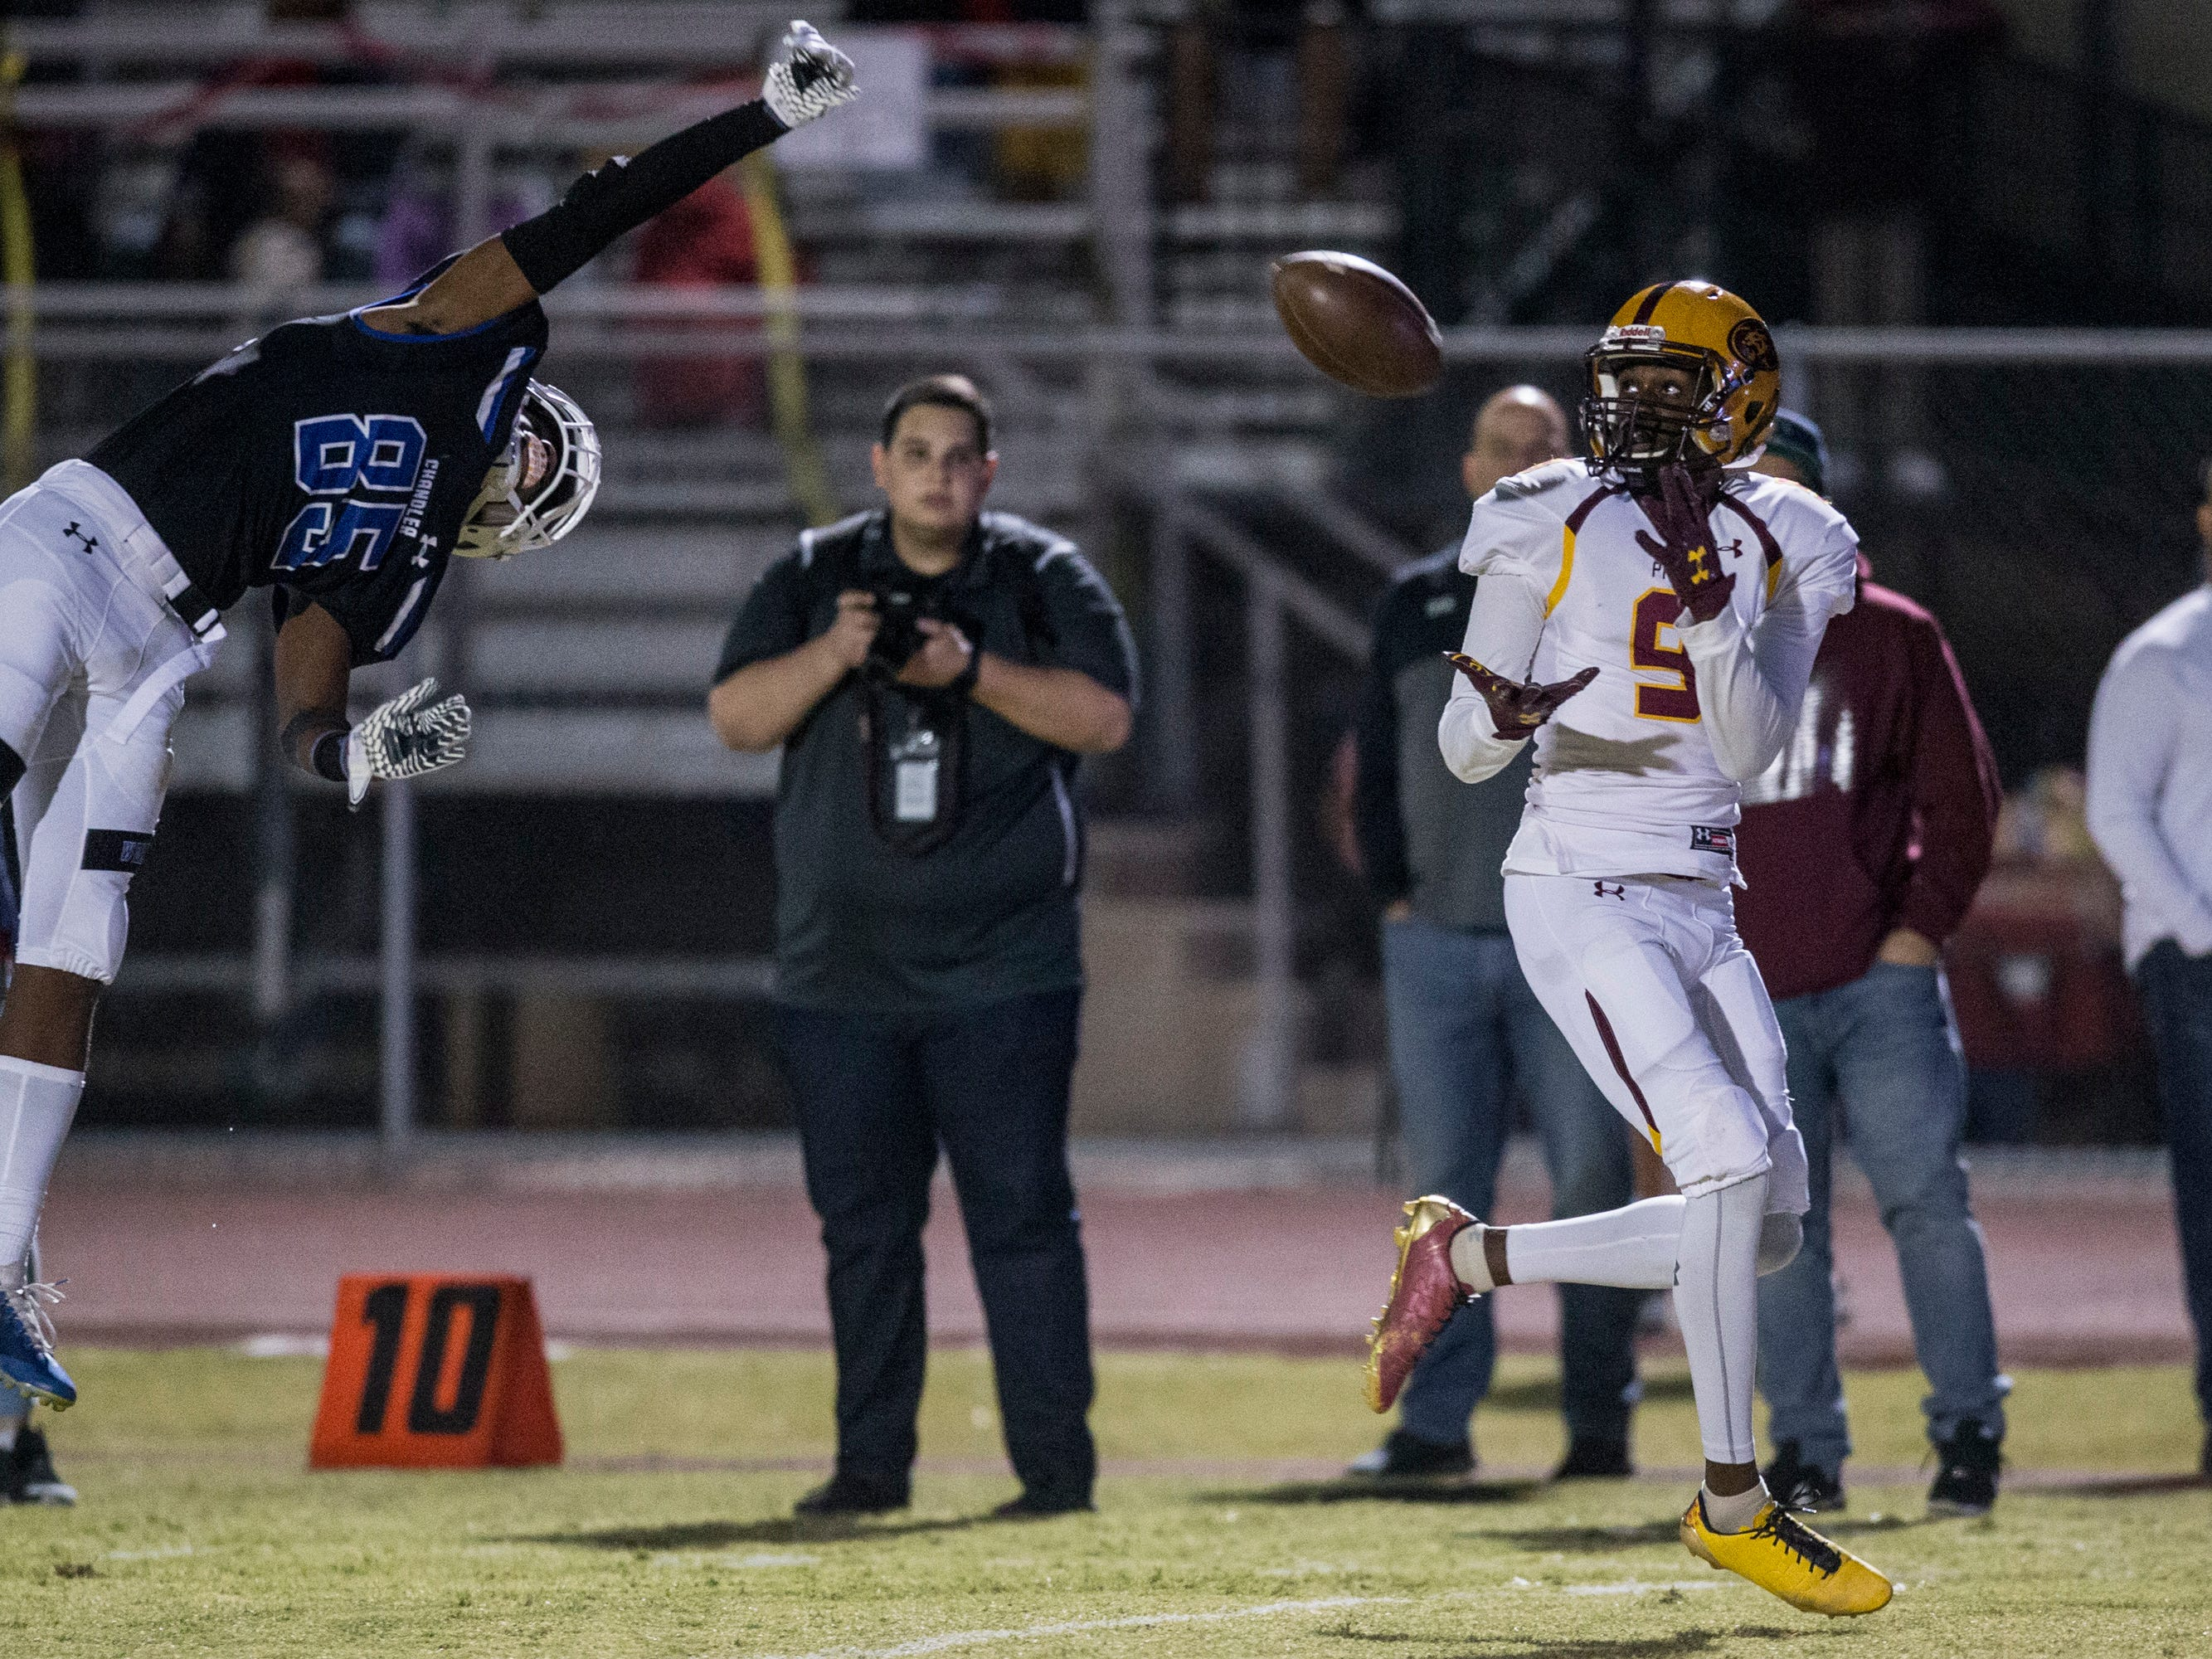 Mountain Pointe's Dominique Davis catches a touchdown against Chandler in the first half on Friday, Nov. 9, 2018, at Chandler High School in Chandler, Ariz.